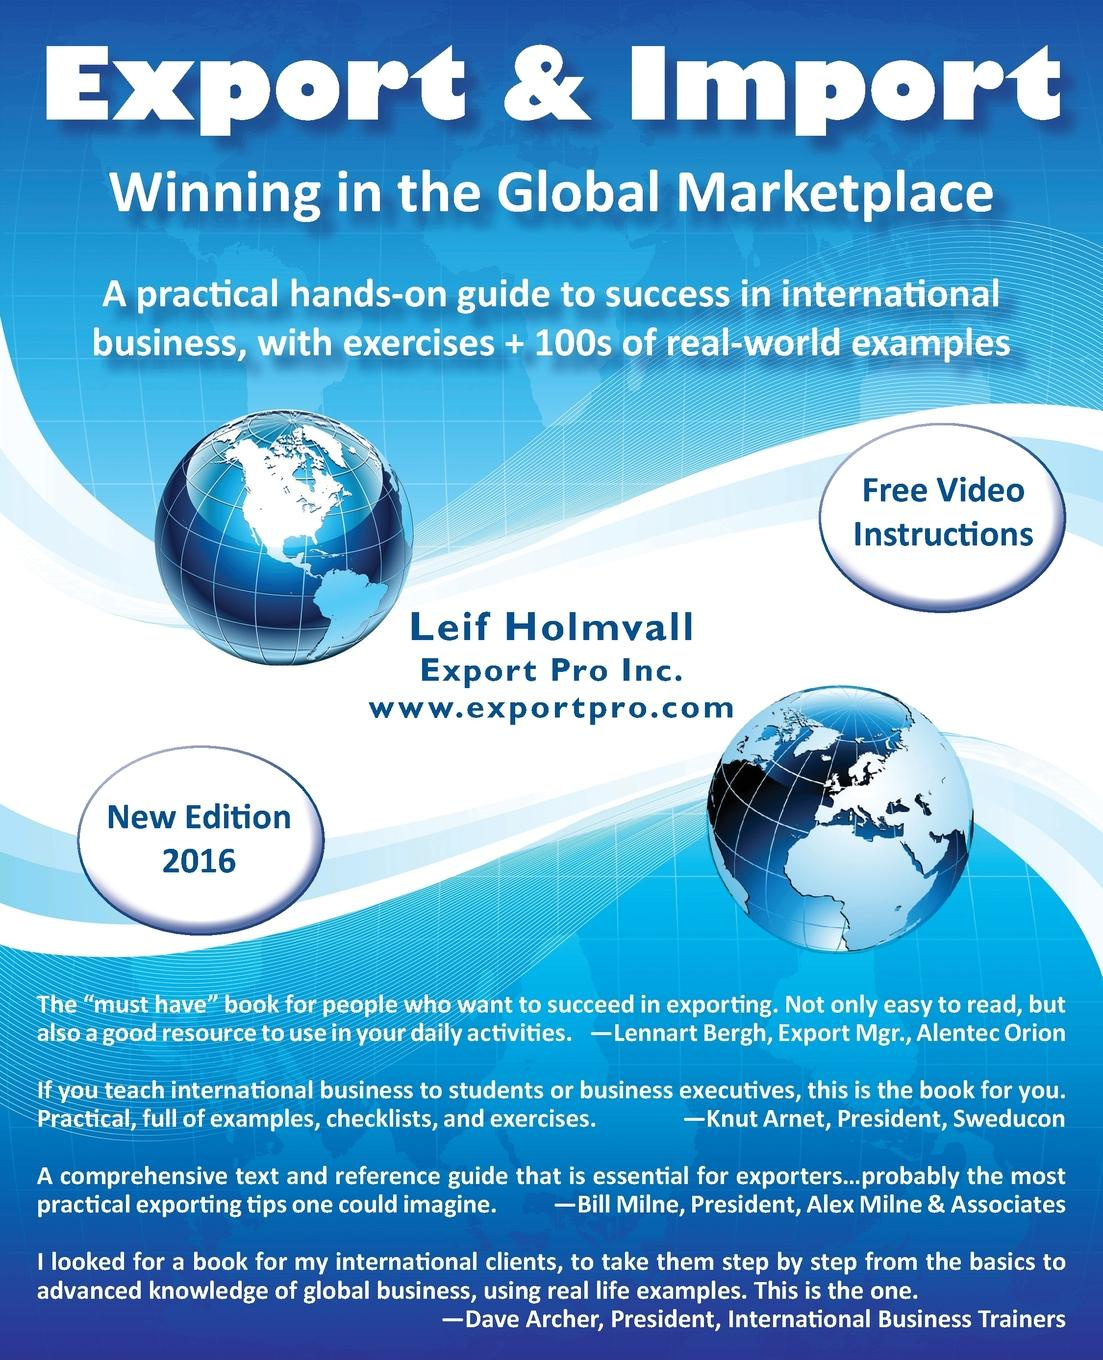 Leif Holmvall Export . Import - Winning in the Global Marketplace. A Practical Hands-On Guide to Success in International Business, with 100s of Real-World Examples william olsen p the anti corruption handbook how to protect your business in the global marketplace